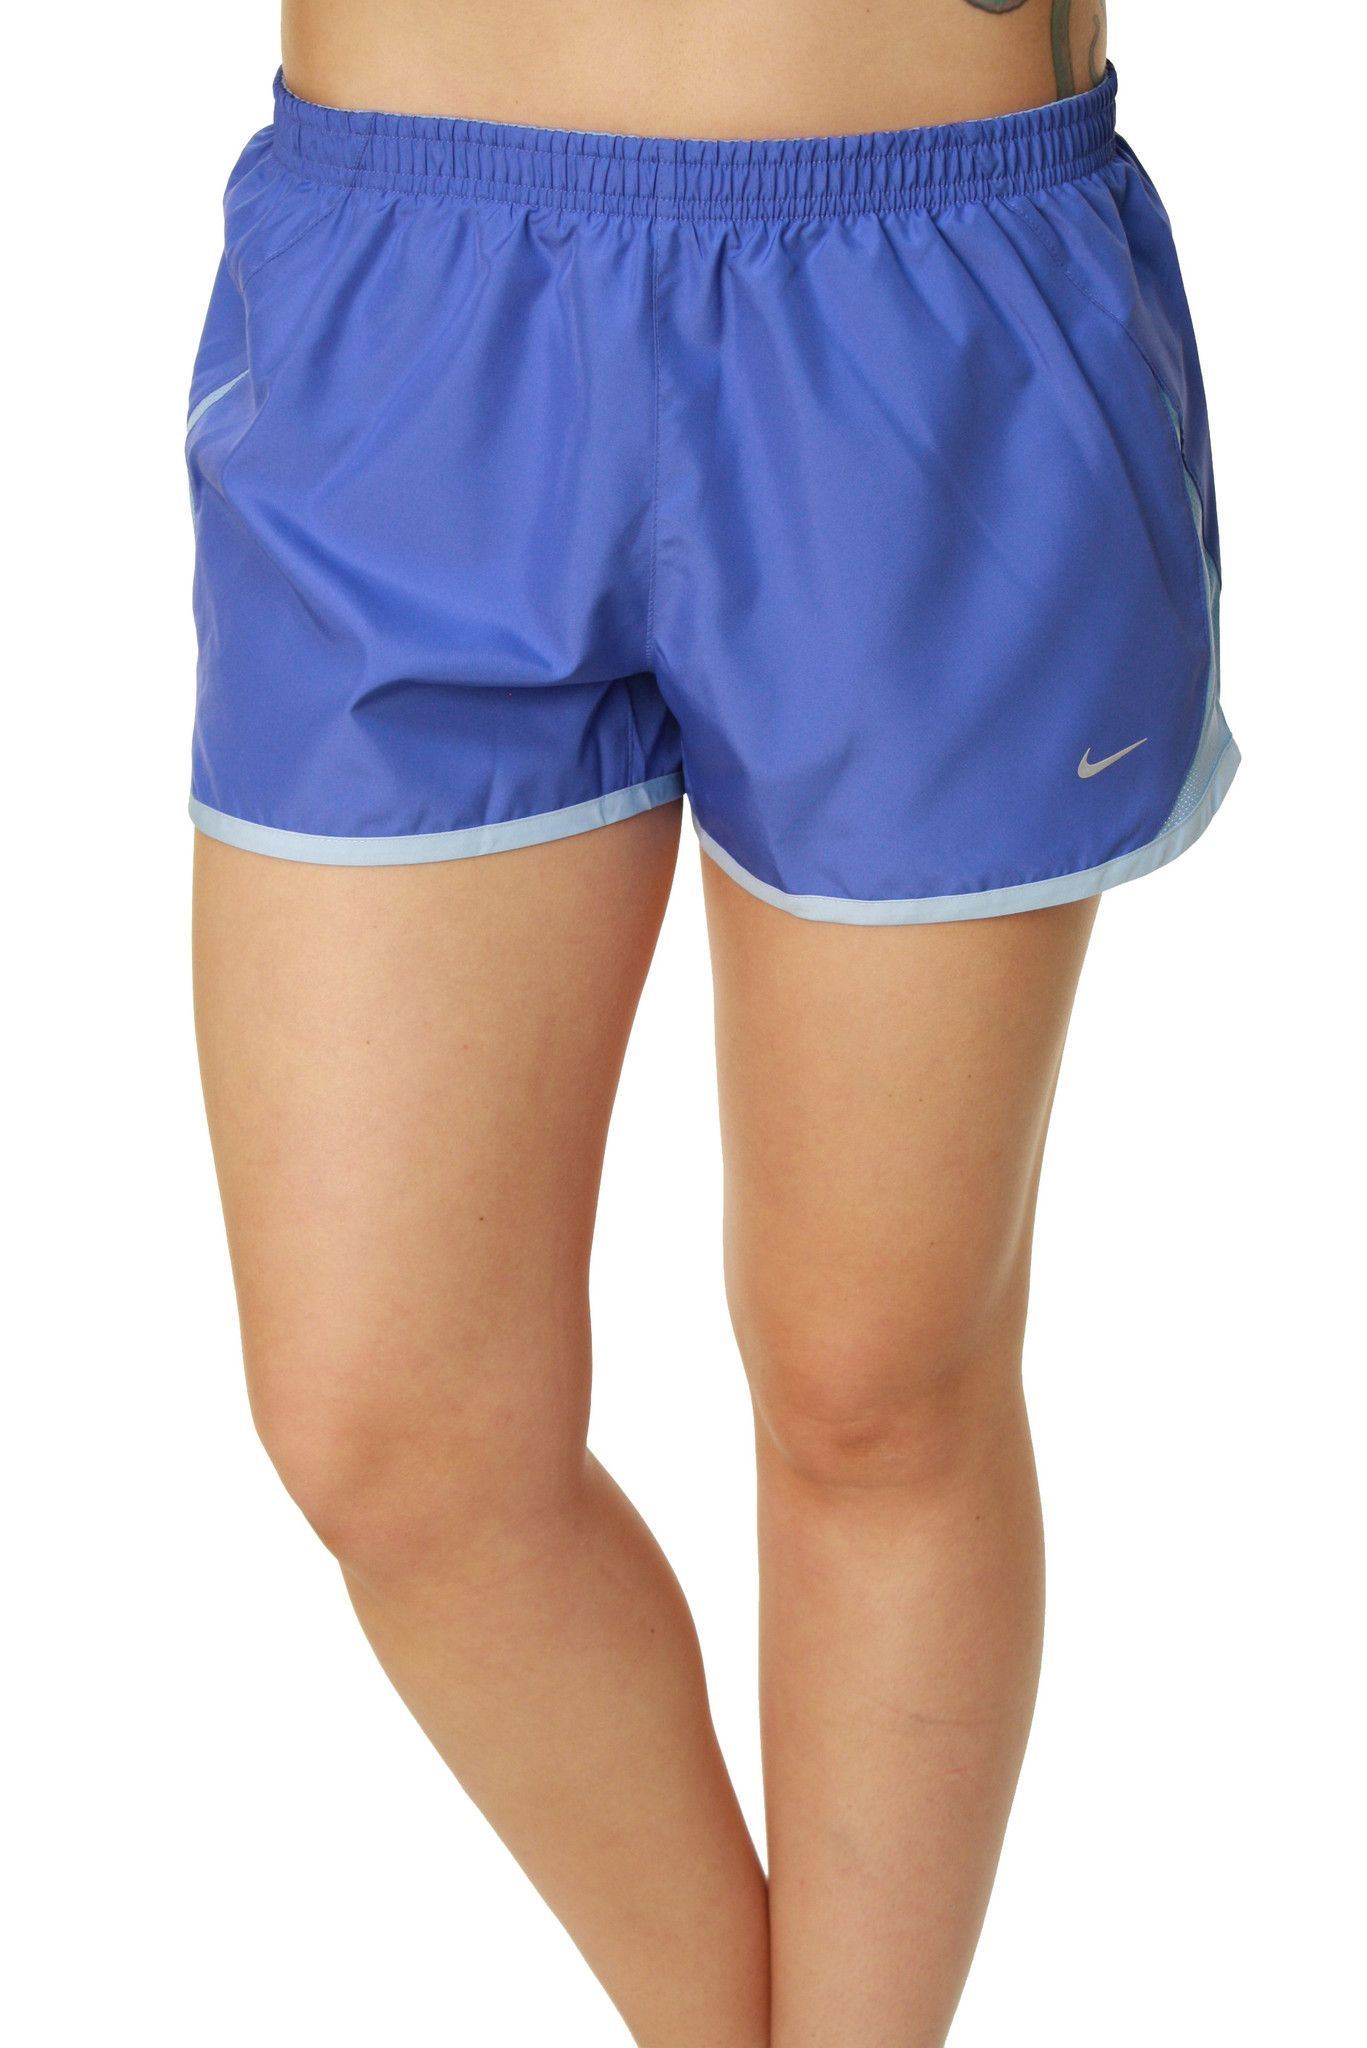 Nike womens running shorts with liner - Nike Women S Built In Brief 5k Running Shorts